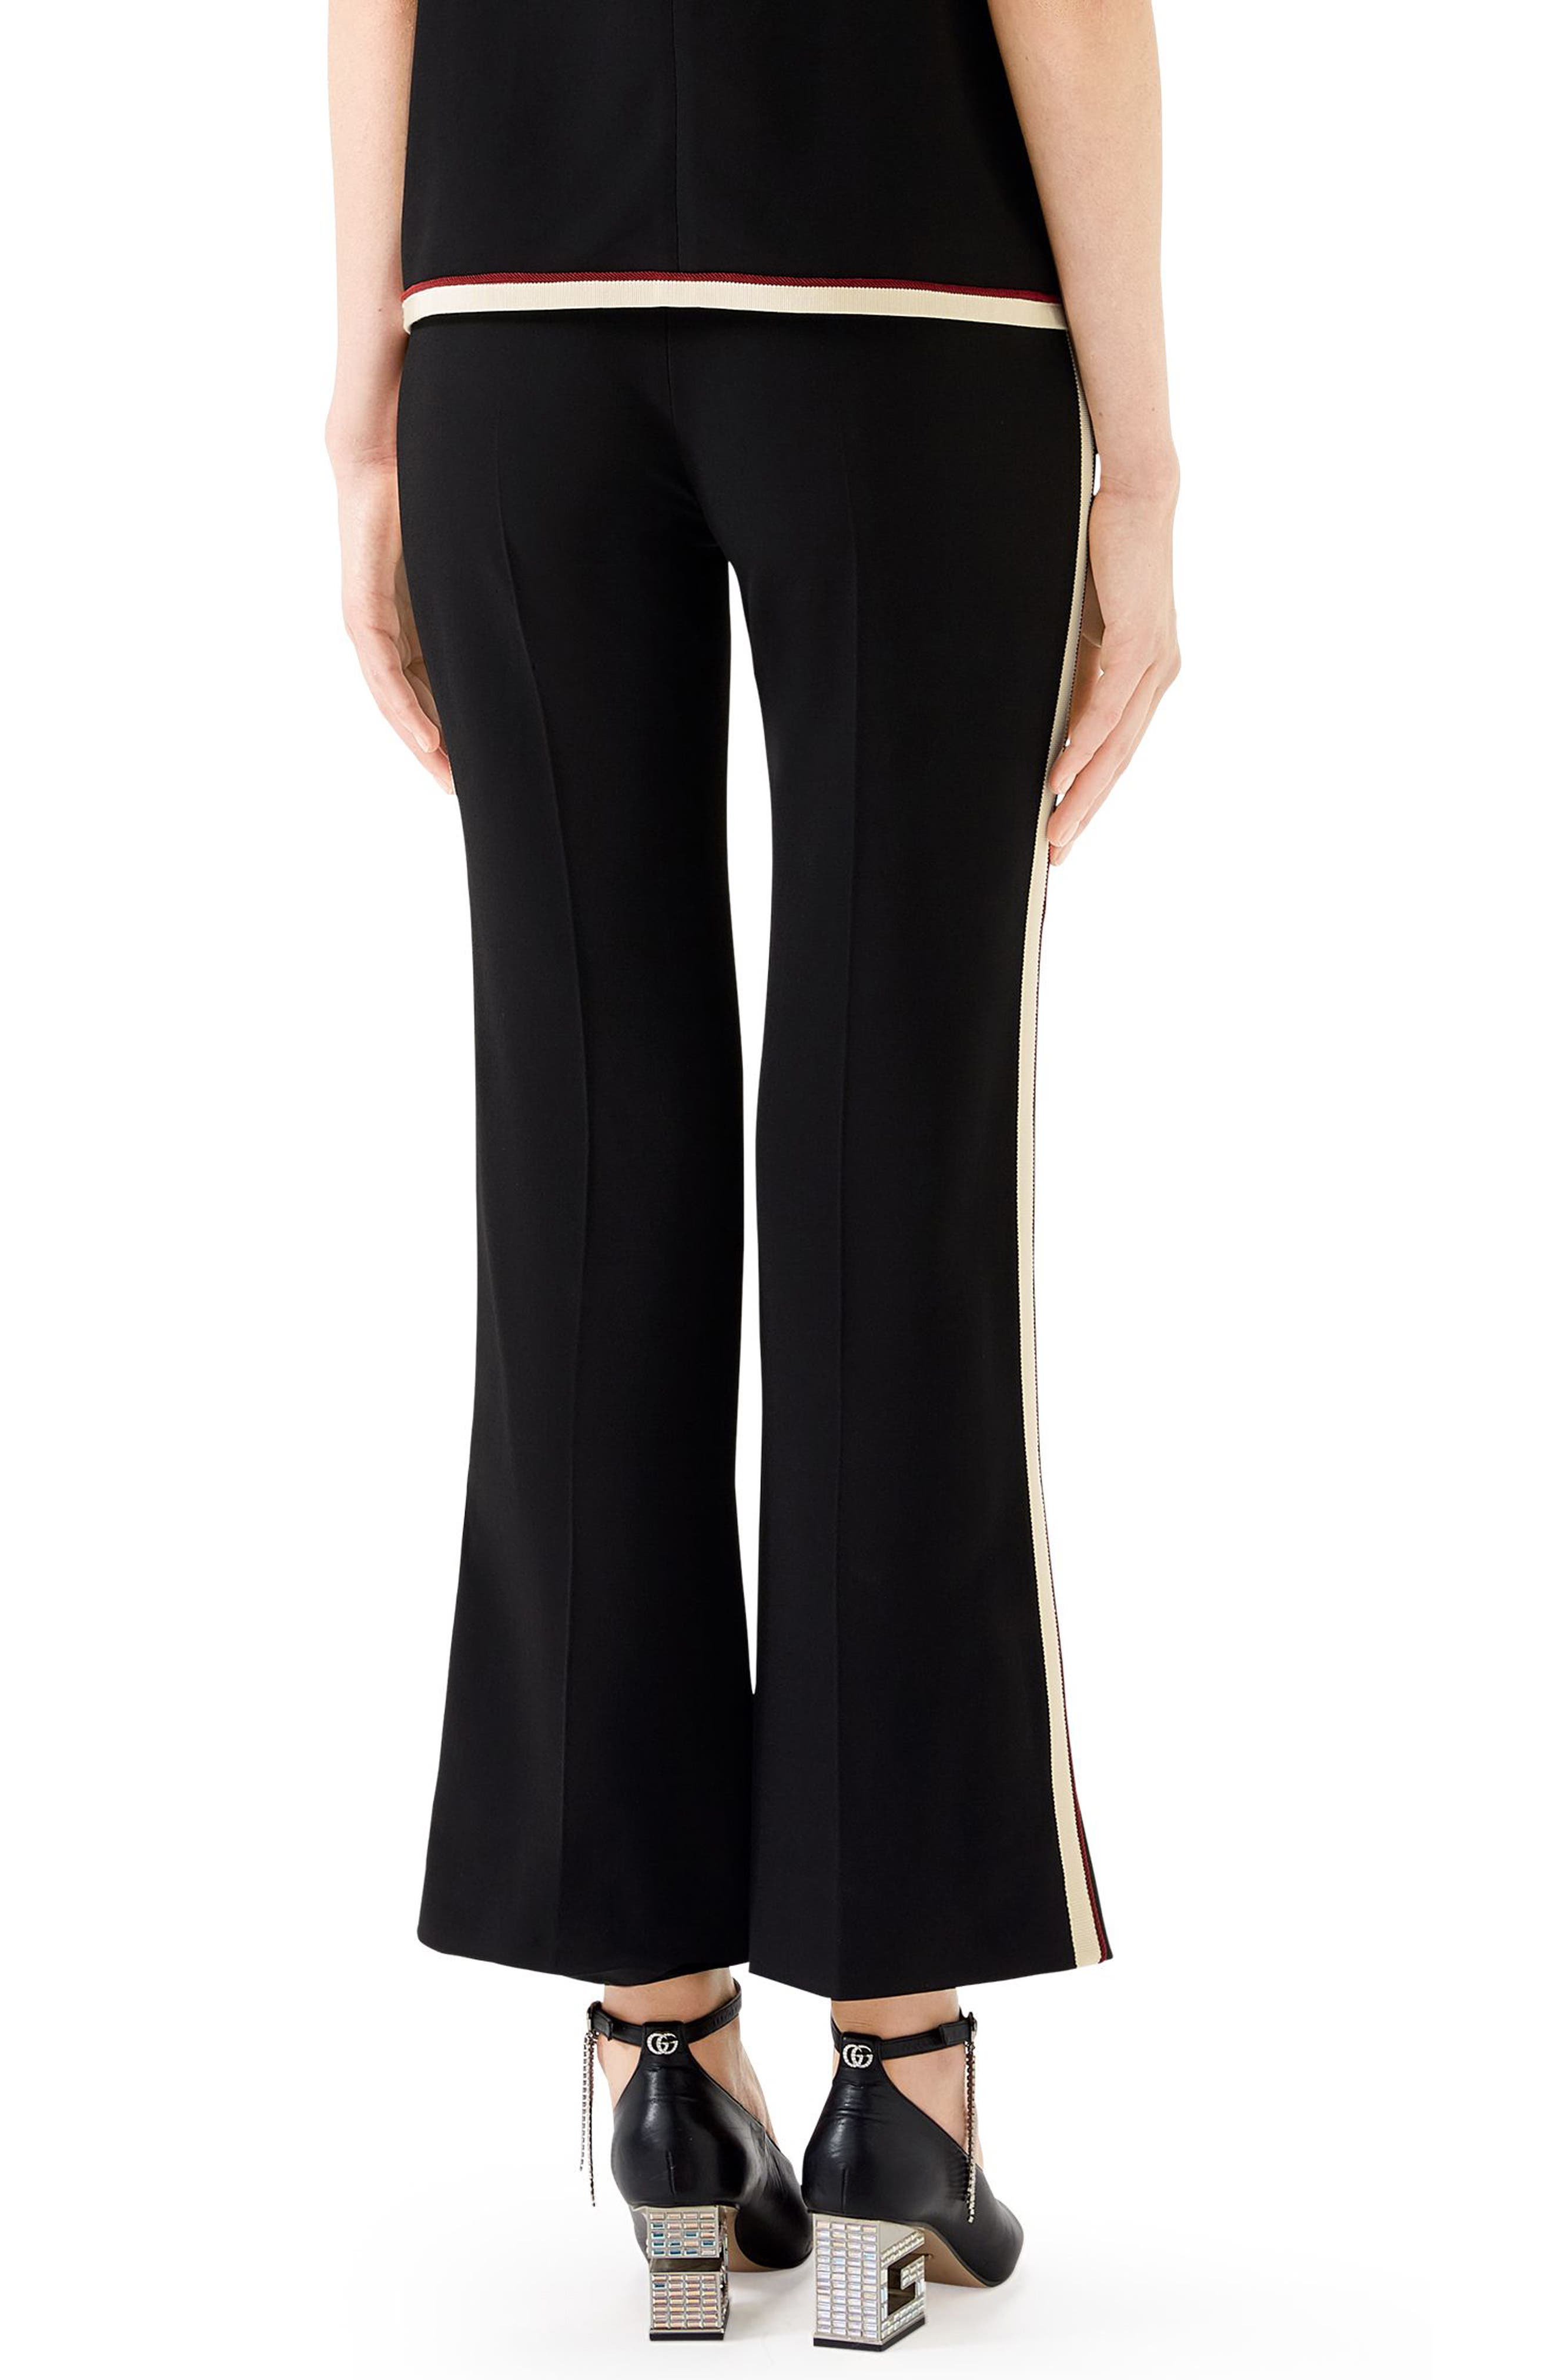 GUCCI,                             Side Stripe Stretch Cady Crop Flare Pants,                             Alternate thumbnail 2, color,                             BLACK